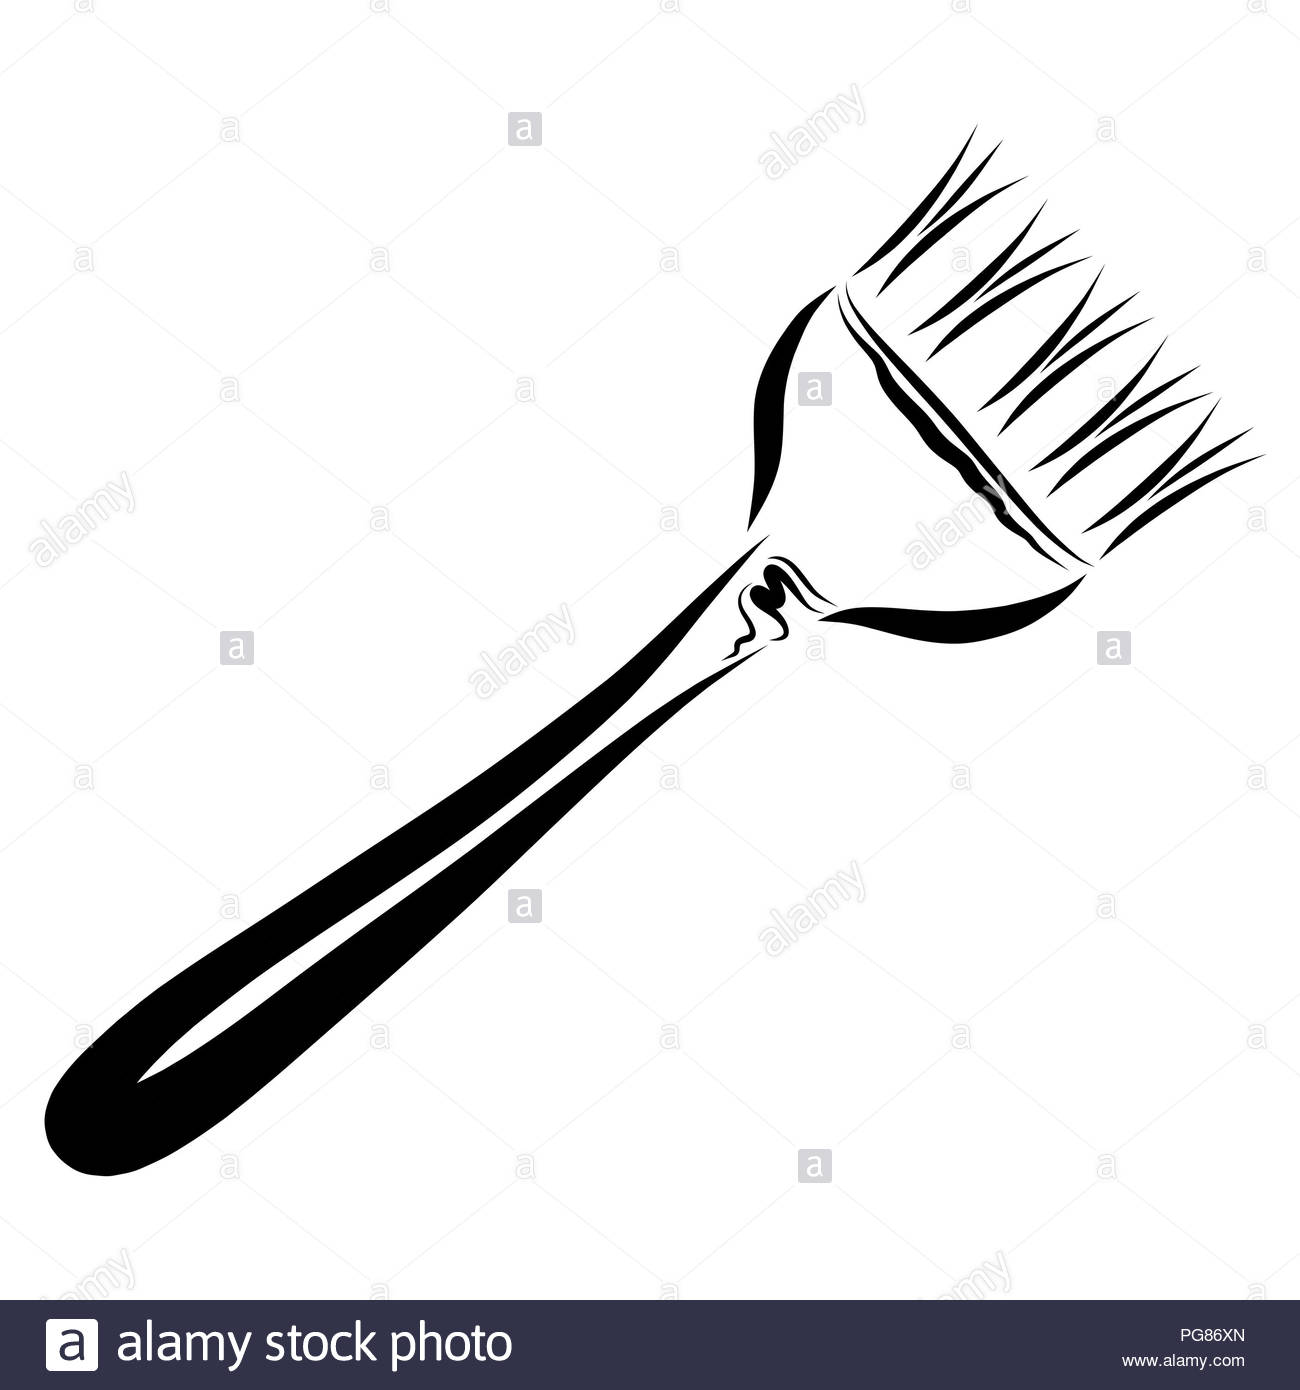 Paint Brush Hair Black and White Stock Photos & Images - Alamy